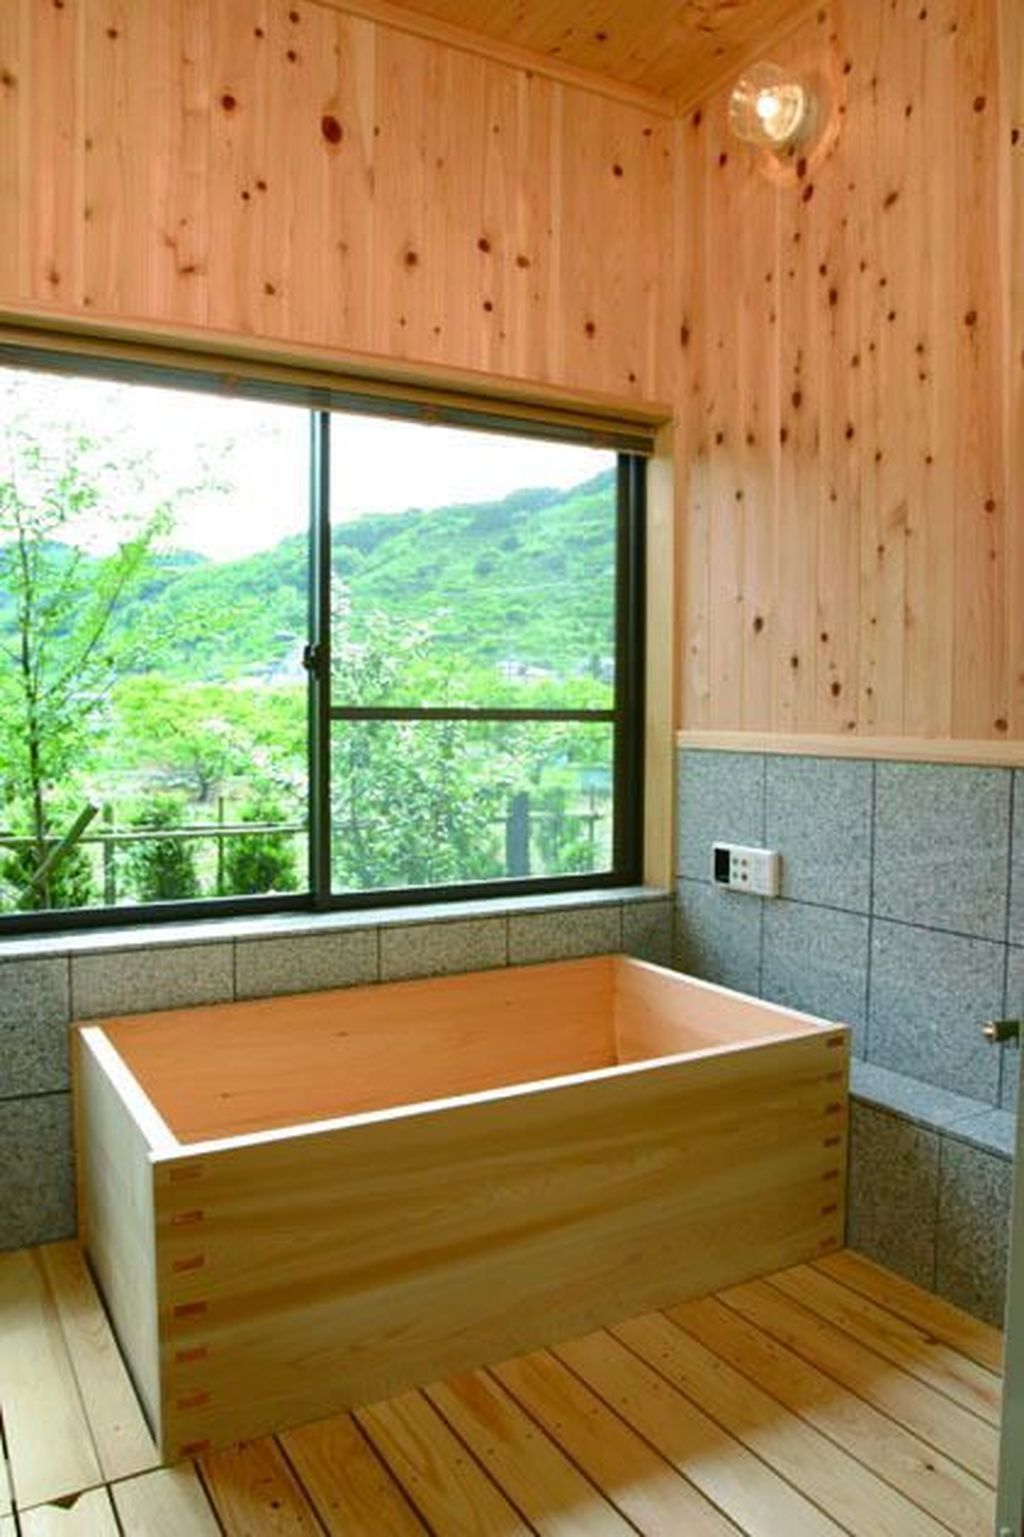 Vasca Da Bagno Enorme 44 the best rustic small bathroom ideas with wooden decor